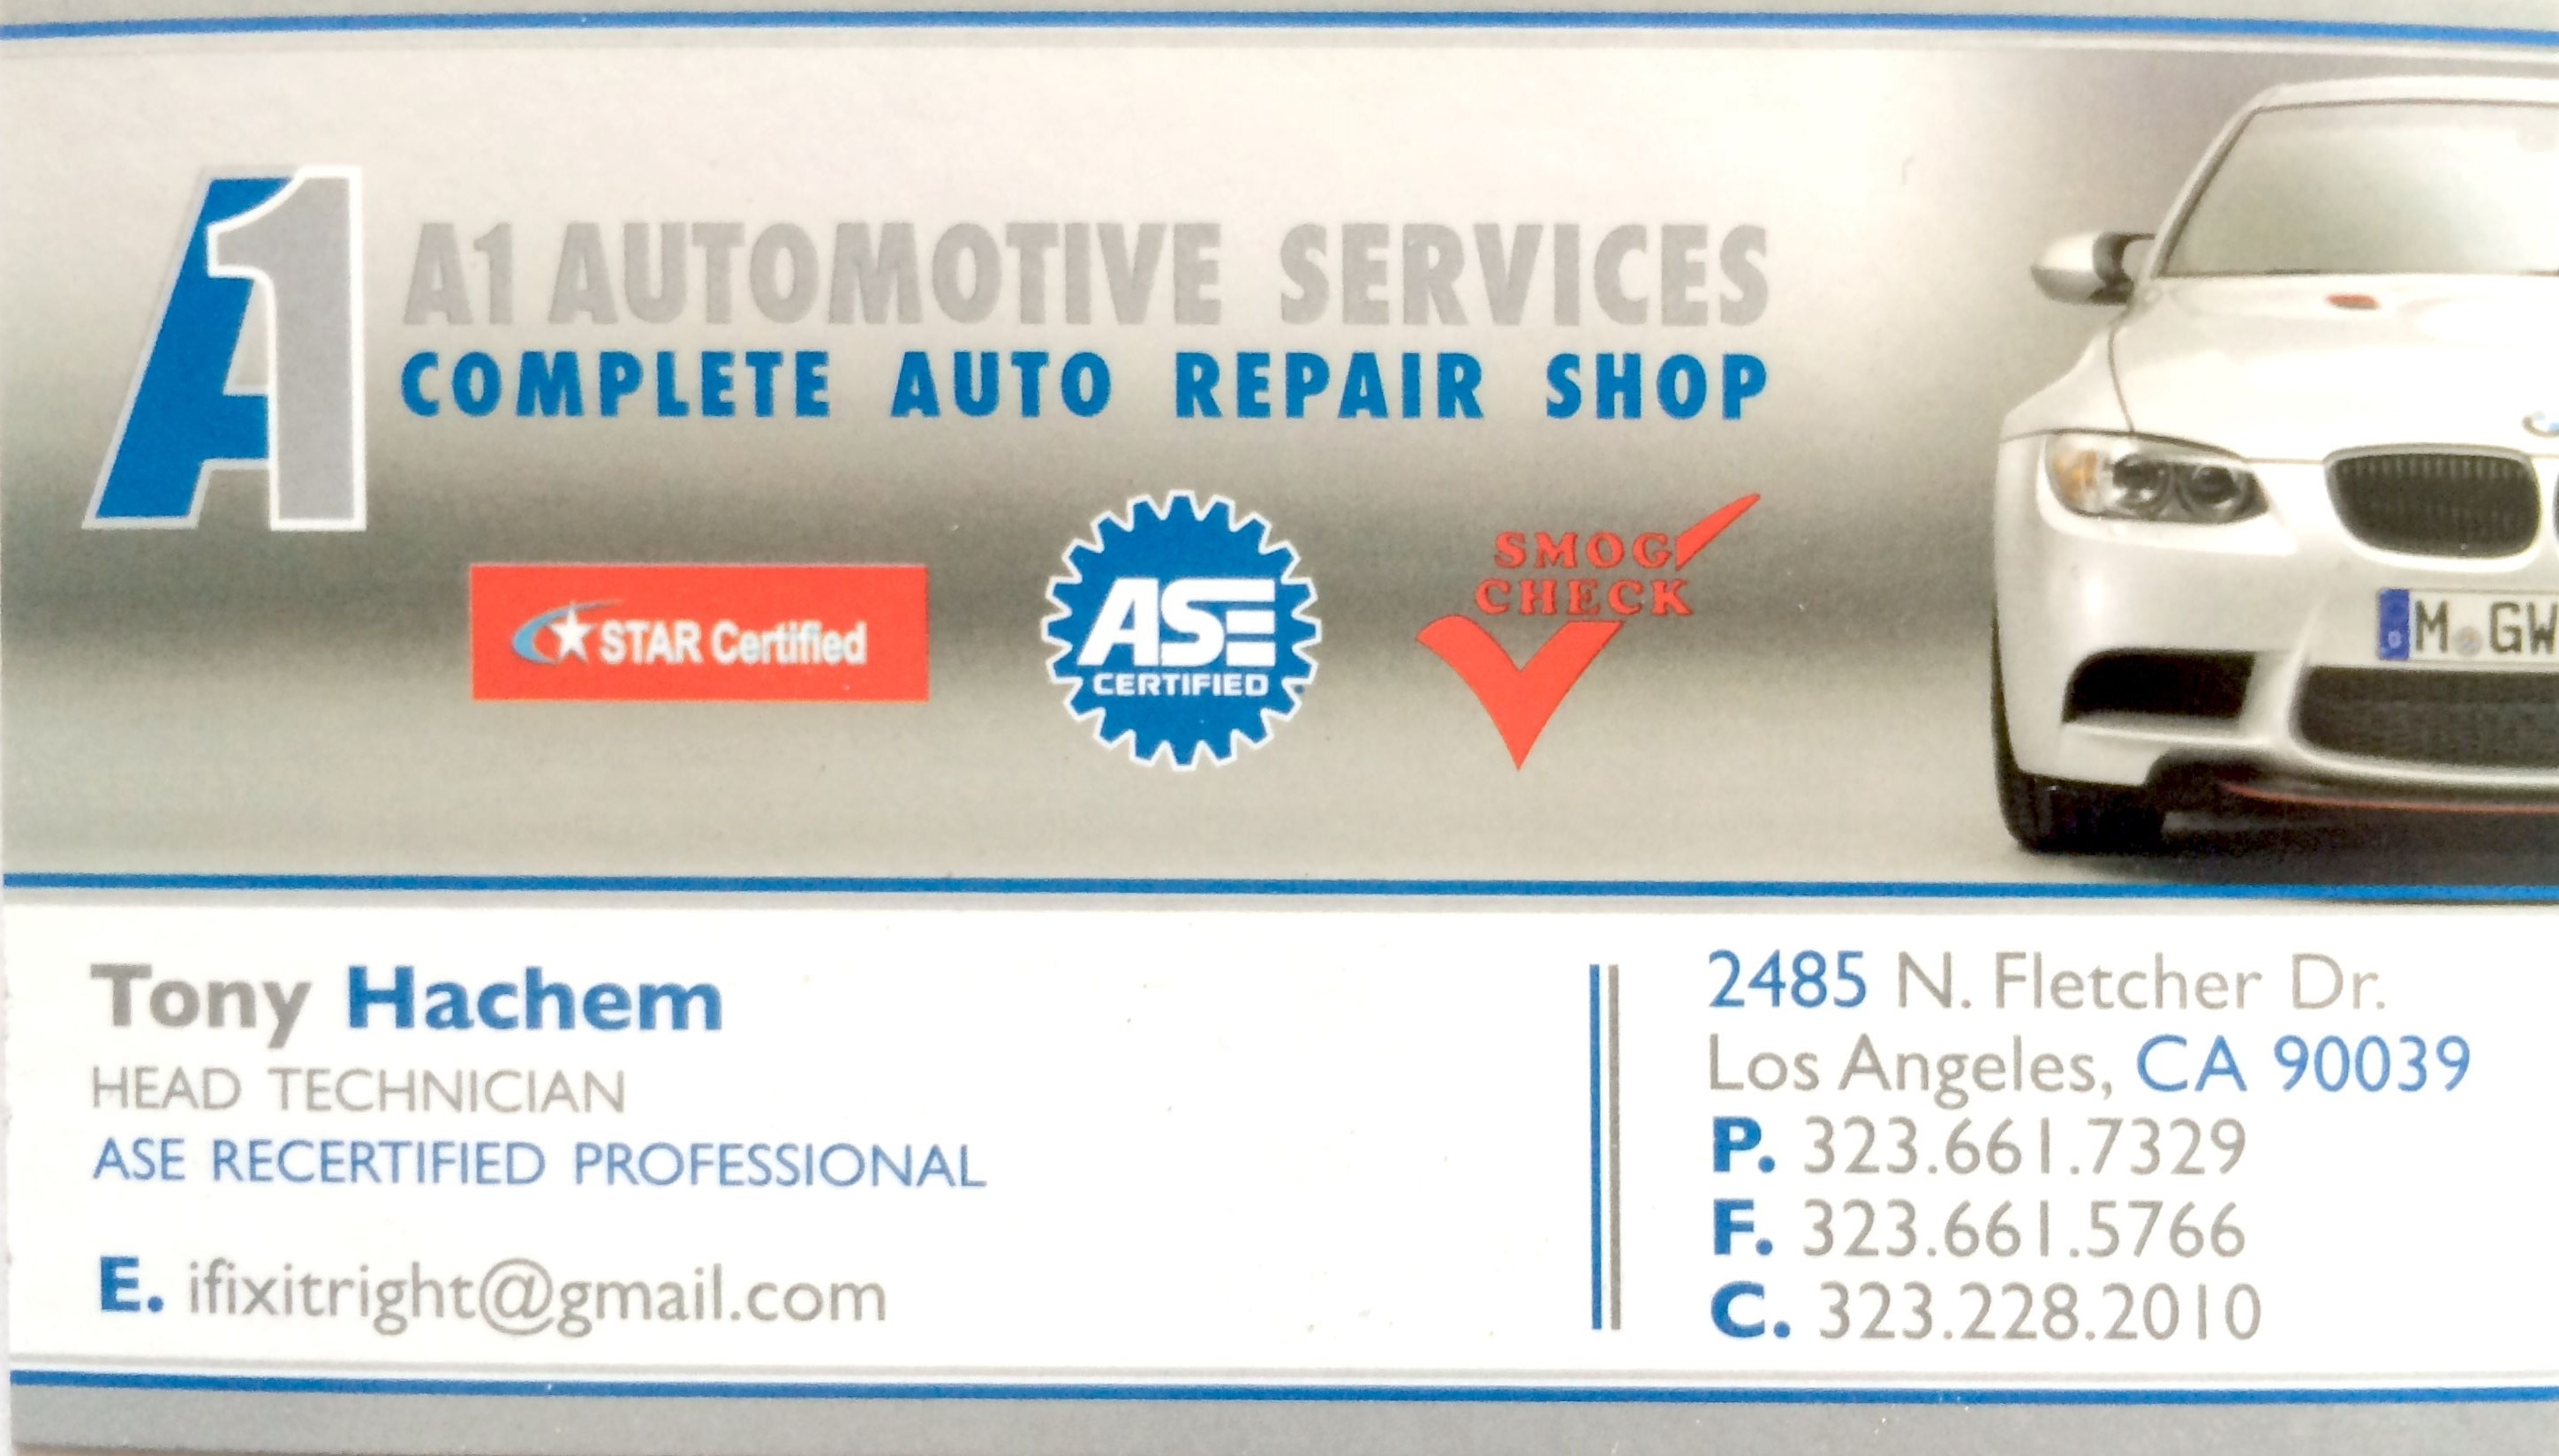 A1 Automotive Services